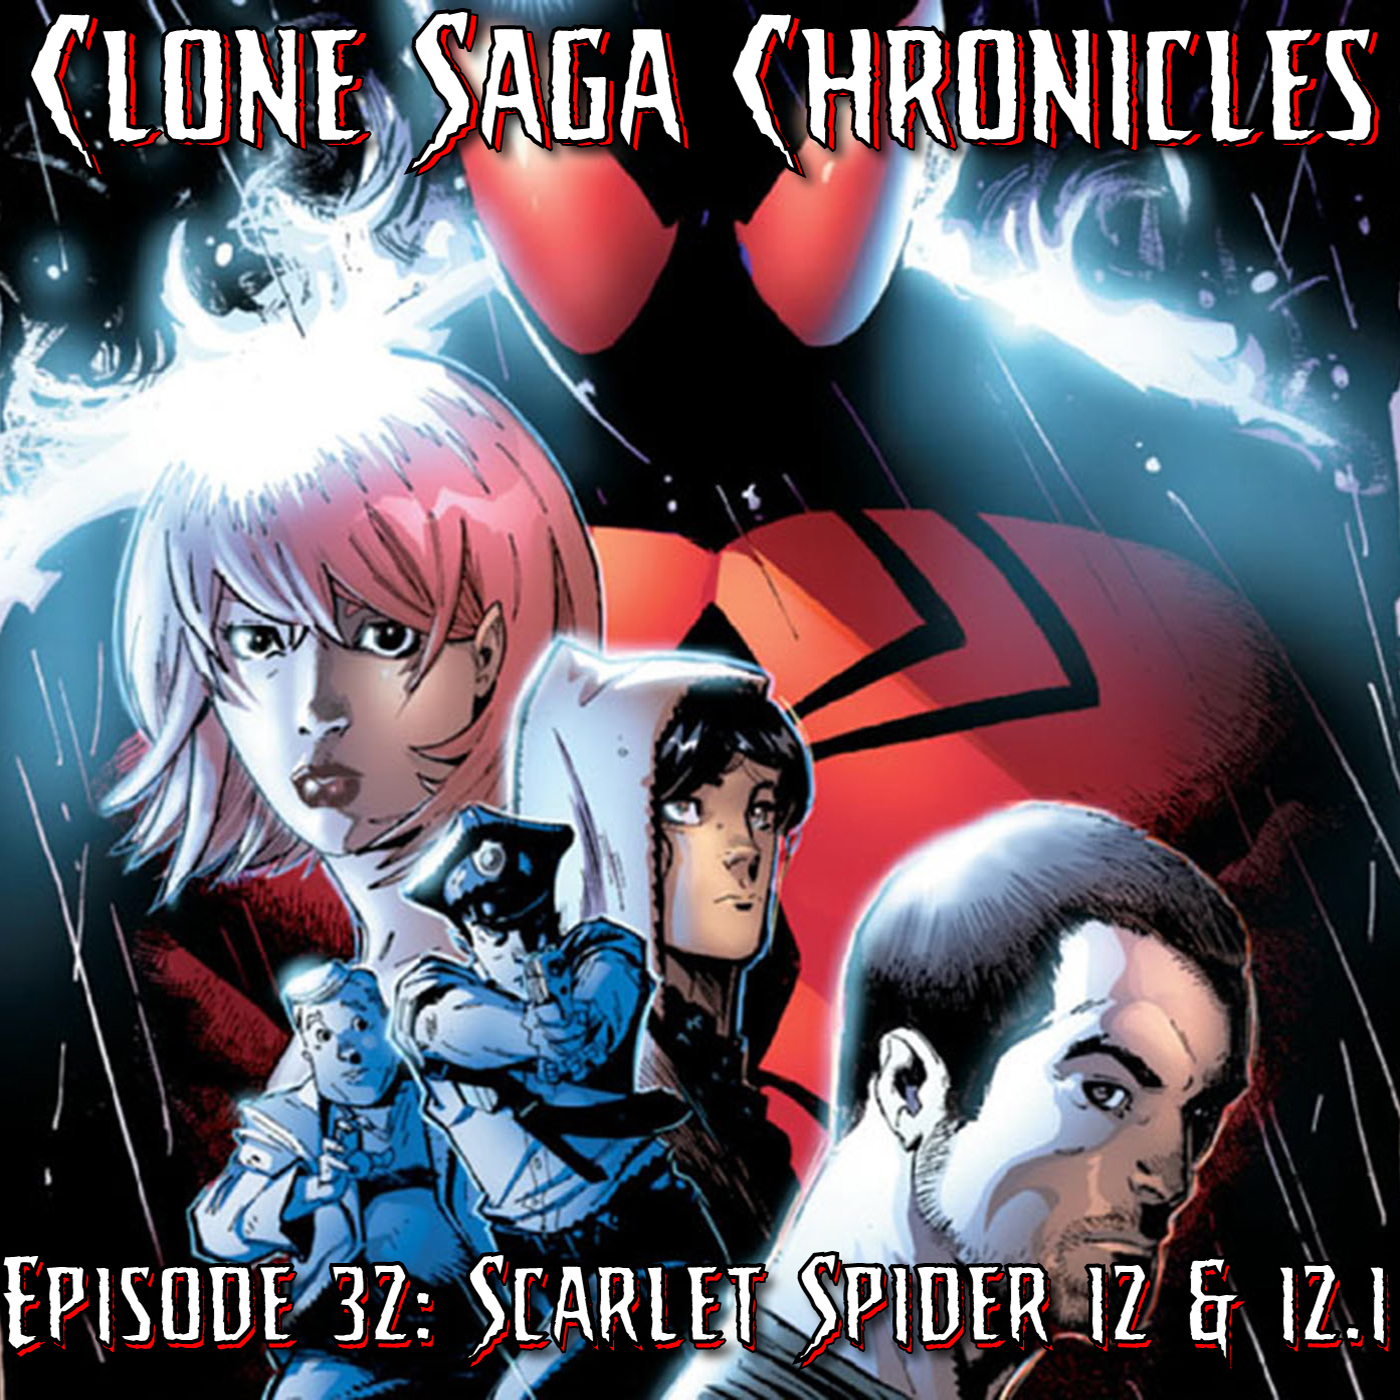 CSC Episode 32: Scarlet Spider 12 and 12.1 (Feb 2013)